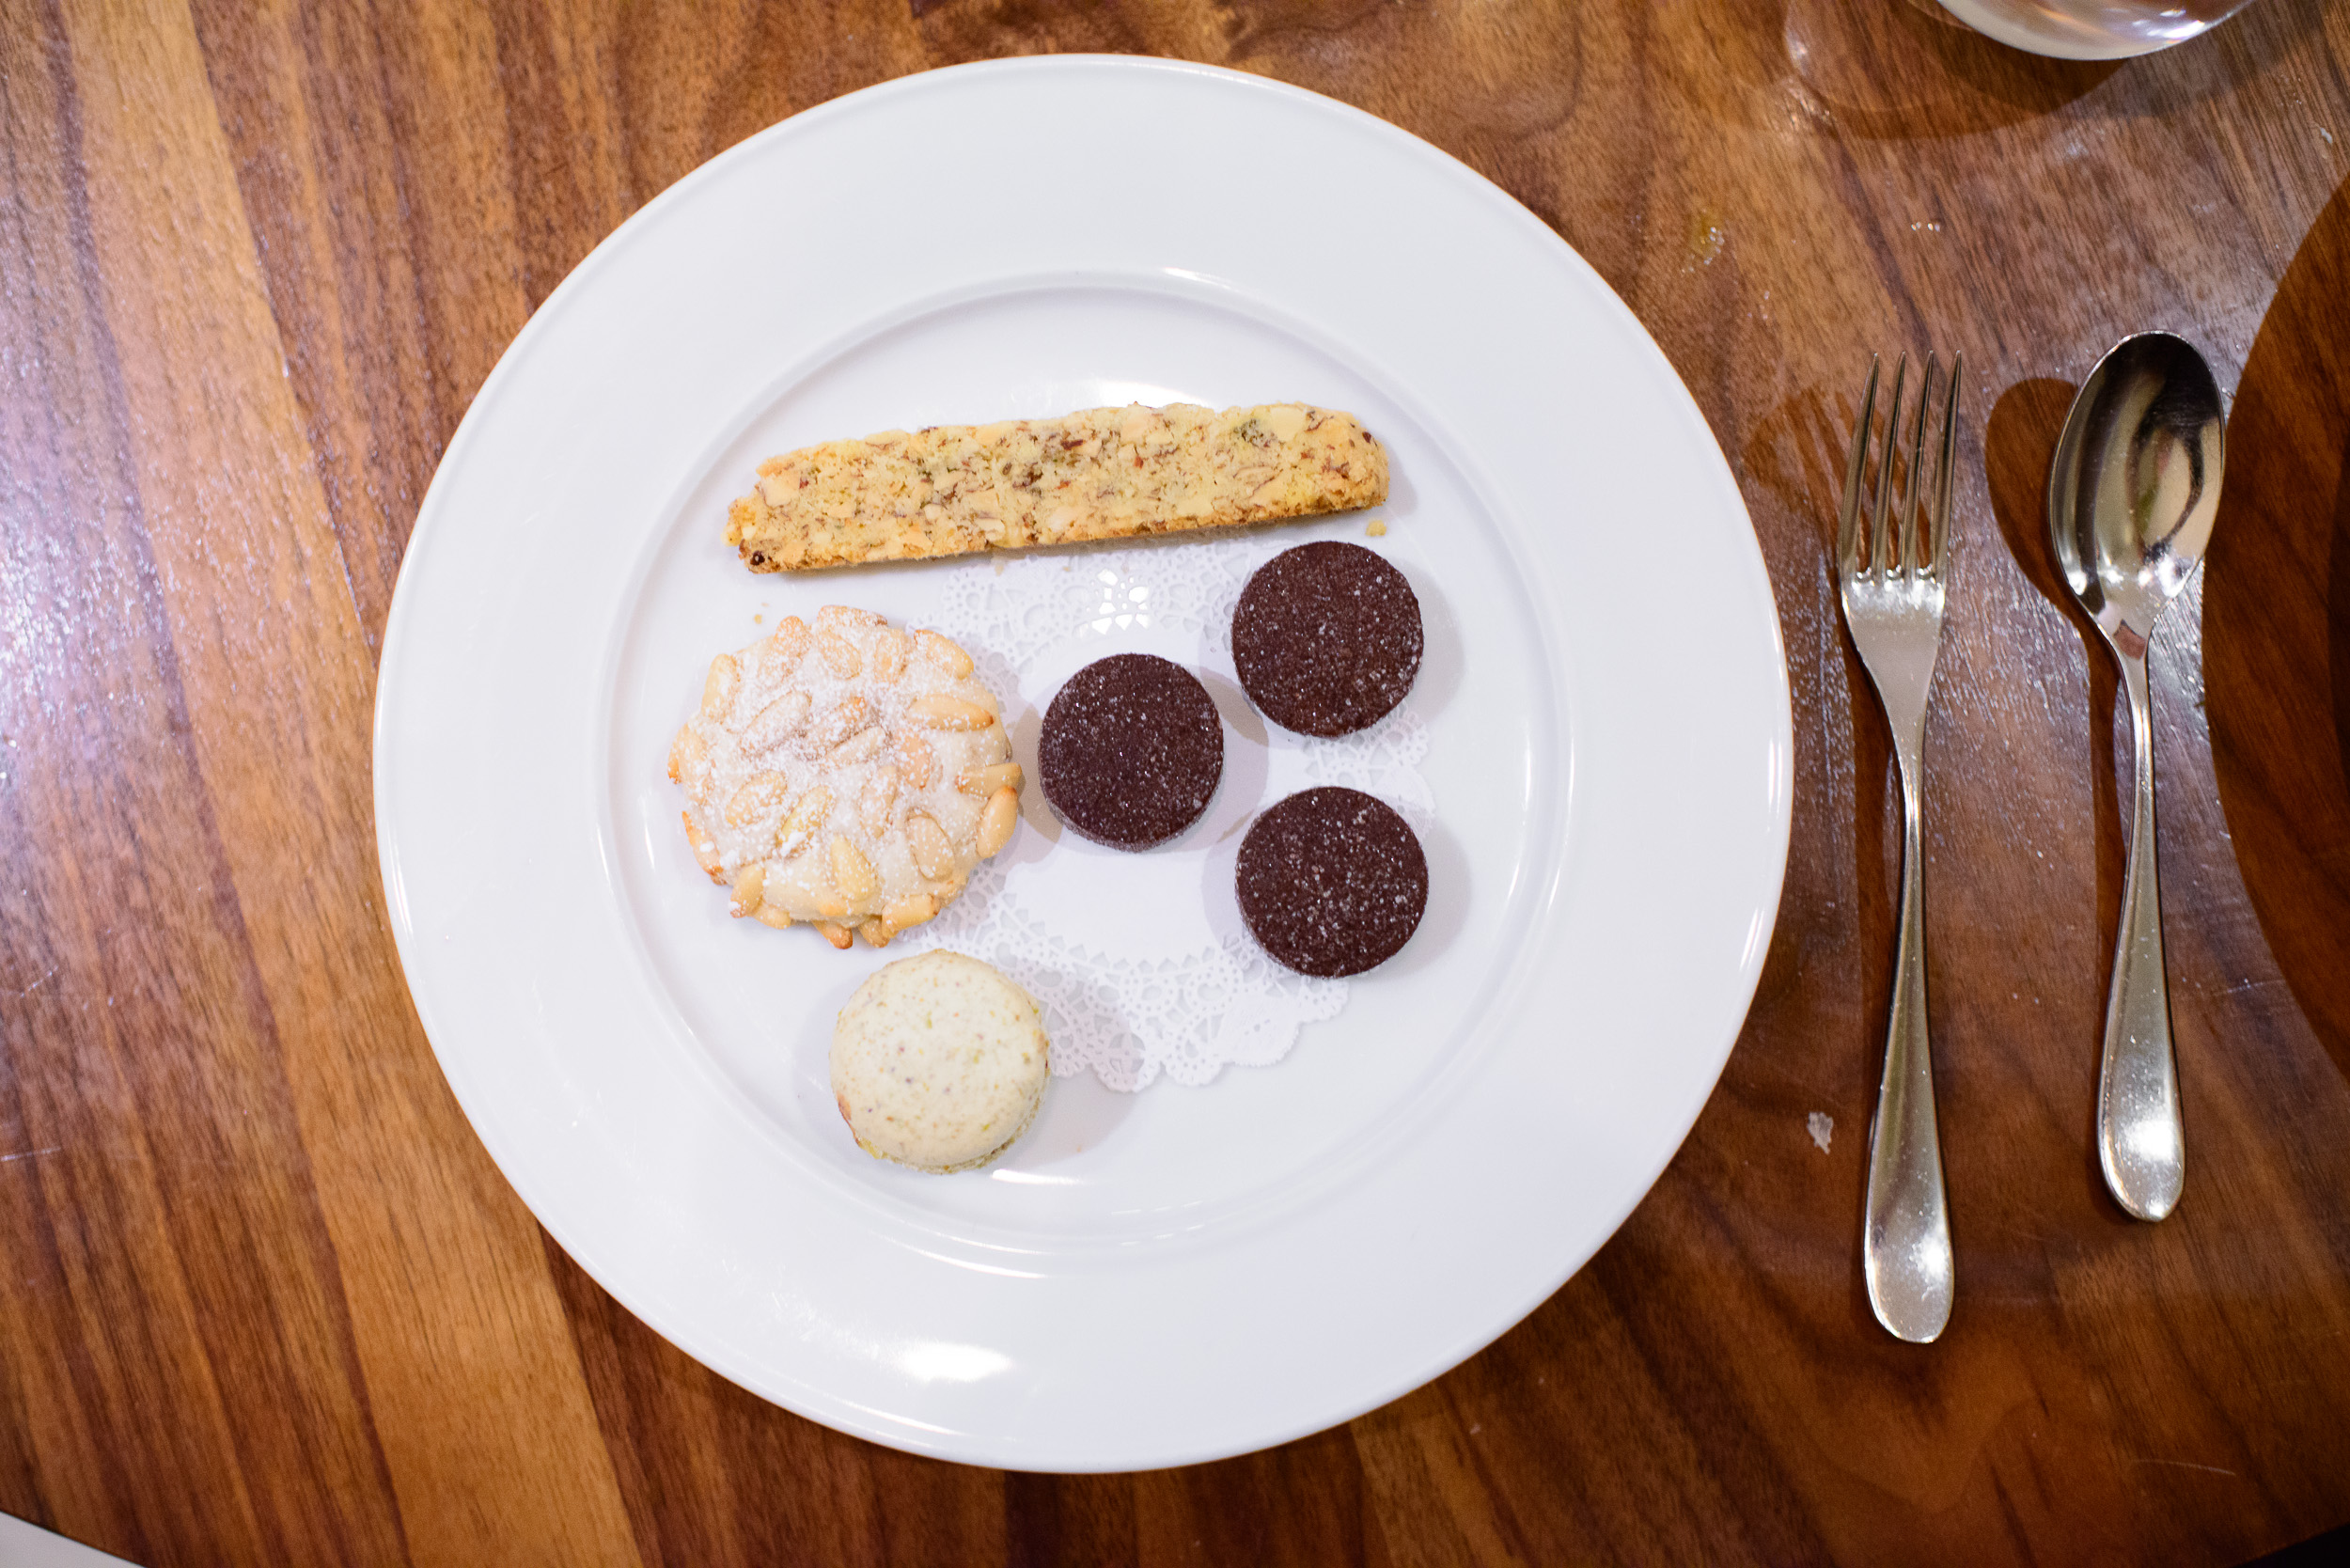 """Biscotti"" - Almond anise, pignole, chocolate shortbread, and pi"